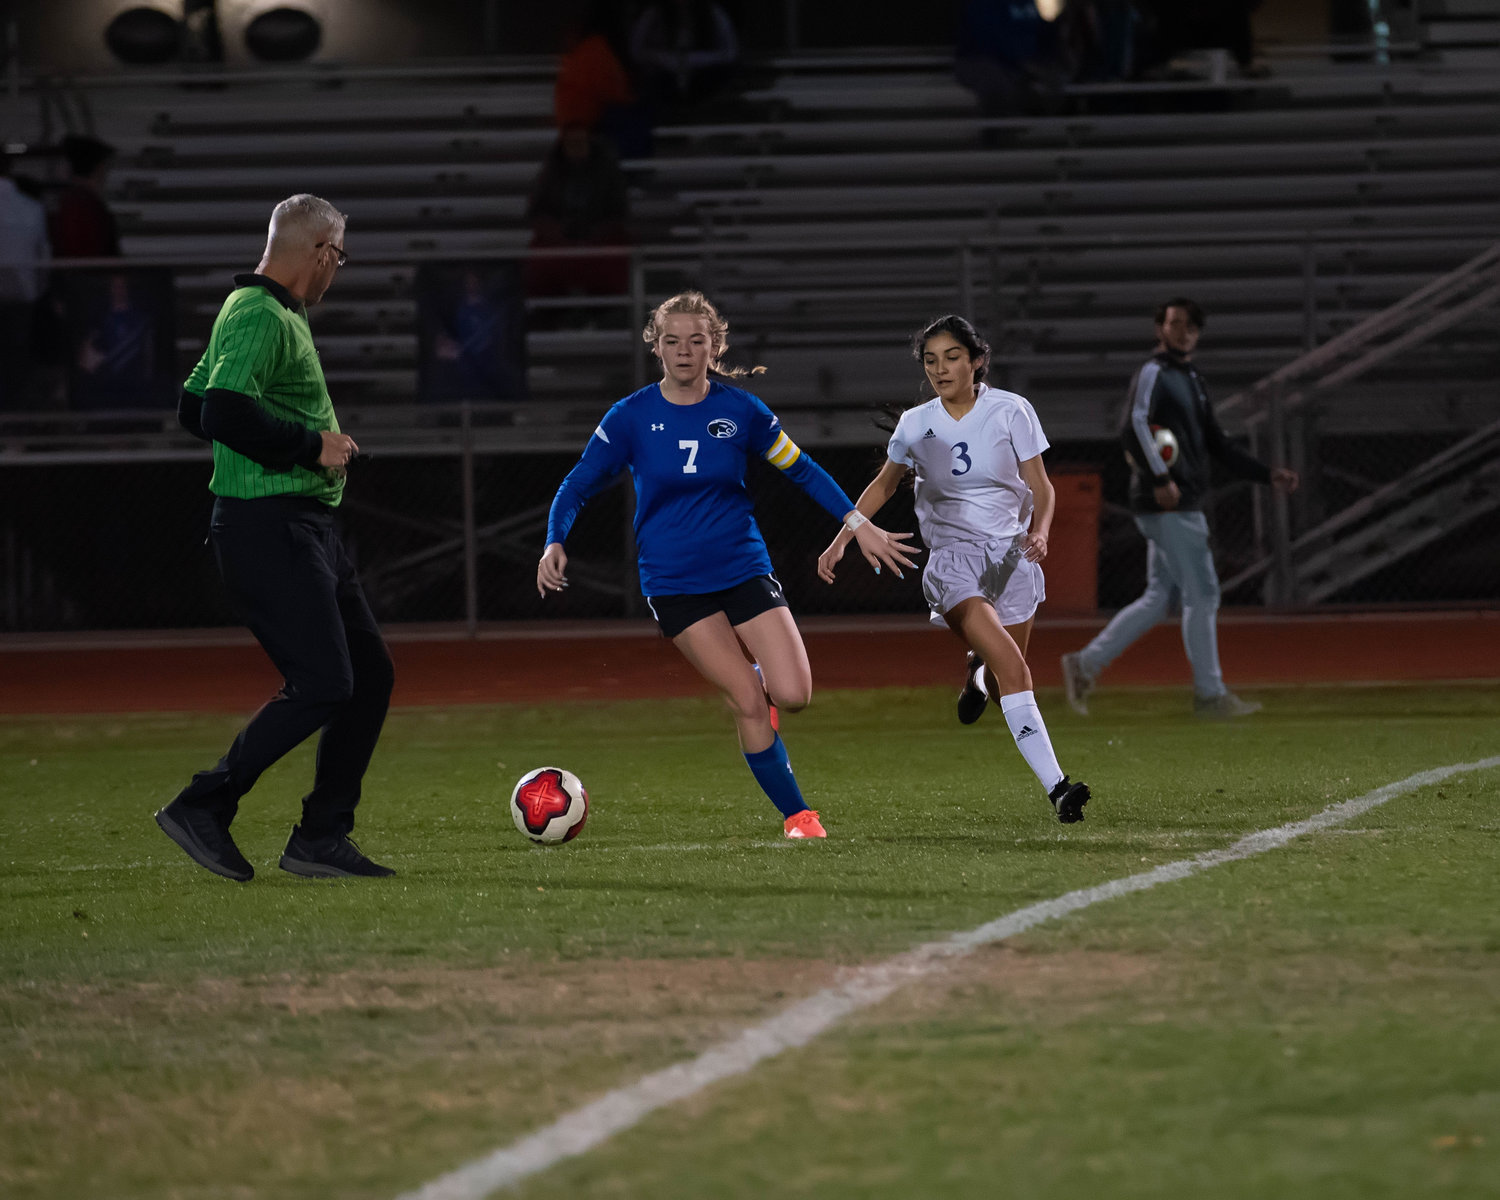 Paradise Honors senior midfielder Sierra Sweeney controls the ball near the top of the box in the Panthers' 6-1 victory over Sedona Red Rock in a 3A girls soccer play-in game Feb. 7 in Surprise.